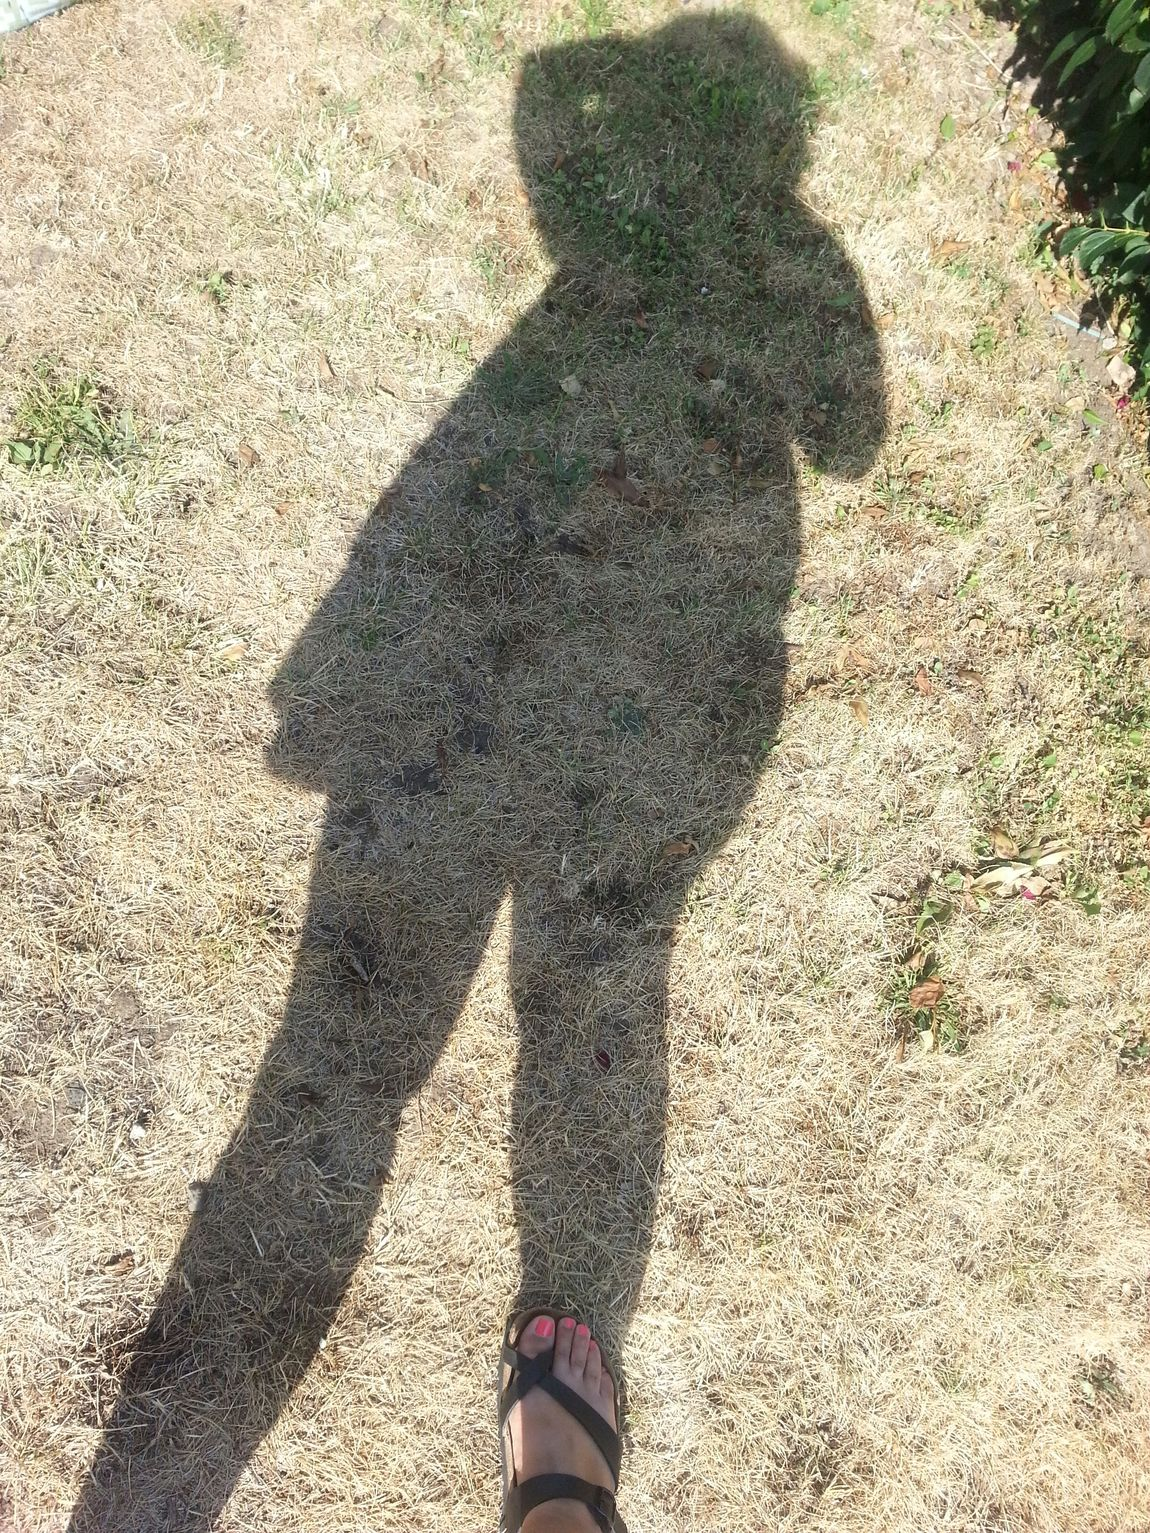 The Other Me Faces Of Summer Barefoot Shadows Silhouettes Sunday Afternoon Happy Sunday ! Capturing Freedom Self Portrait Around The World